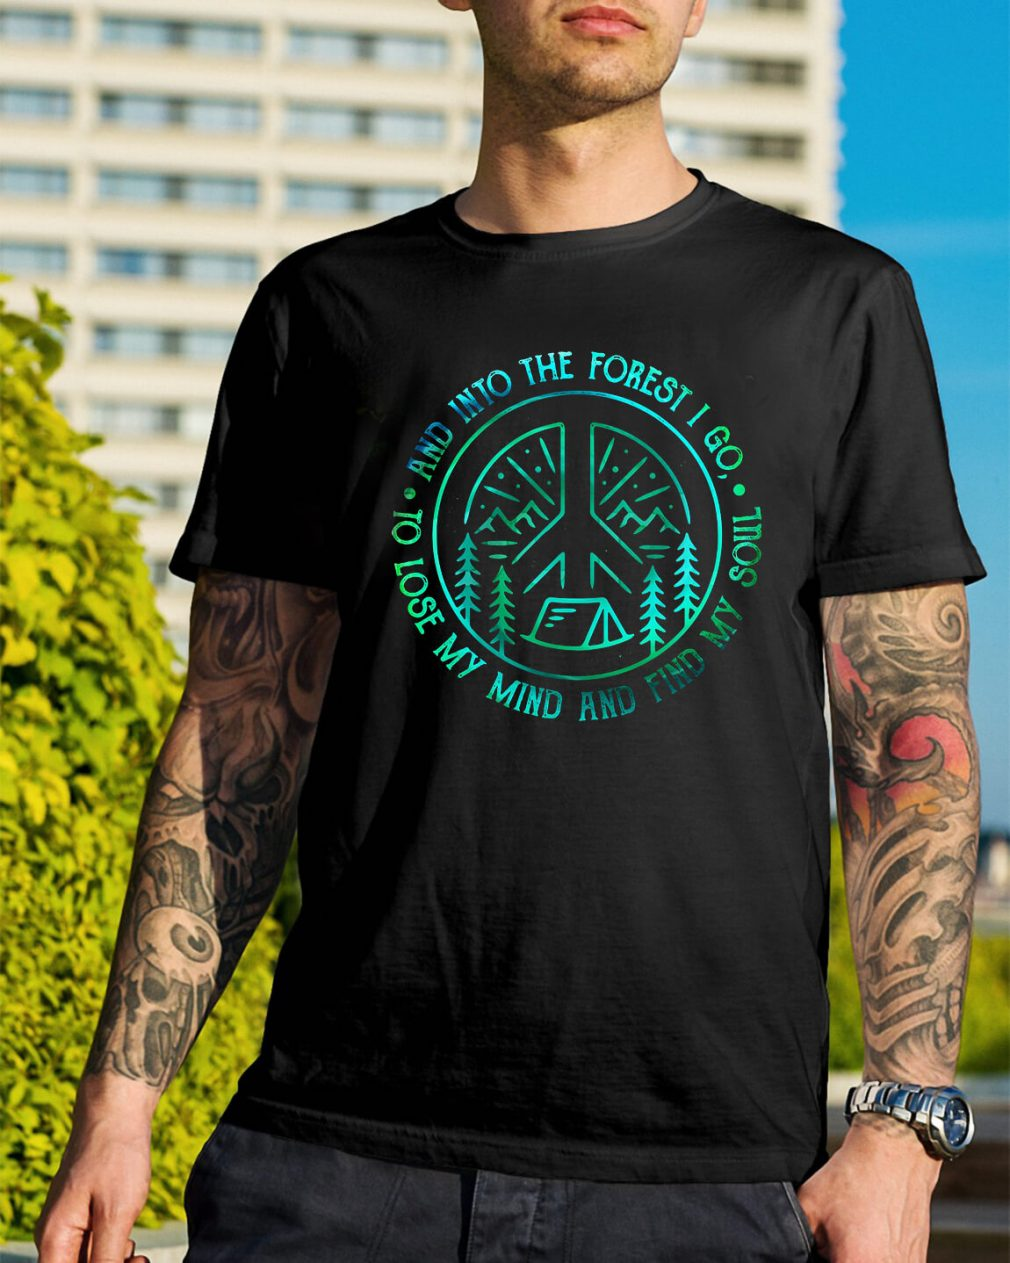 Camping and into the forest I go to lose my mind and find my soul shirt